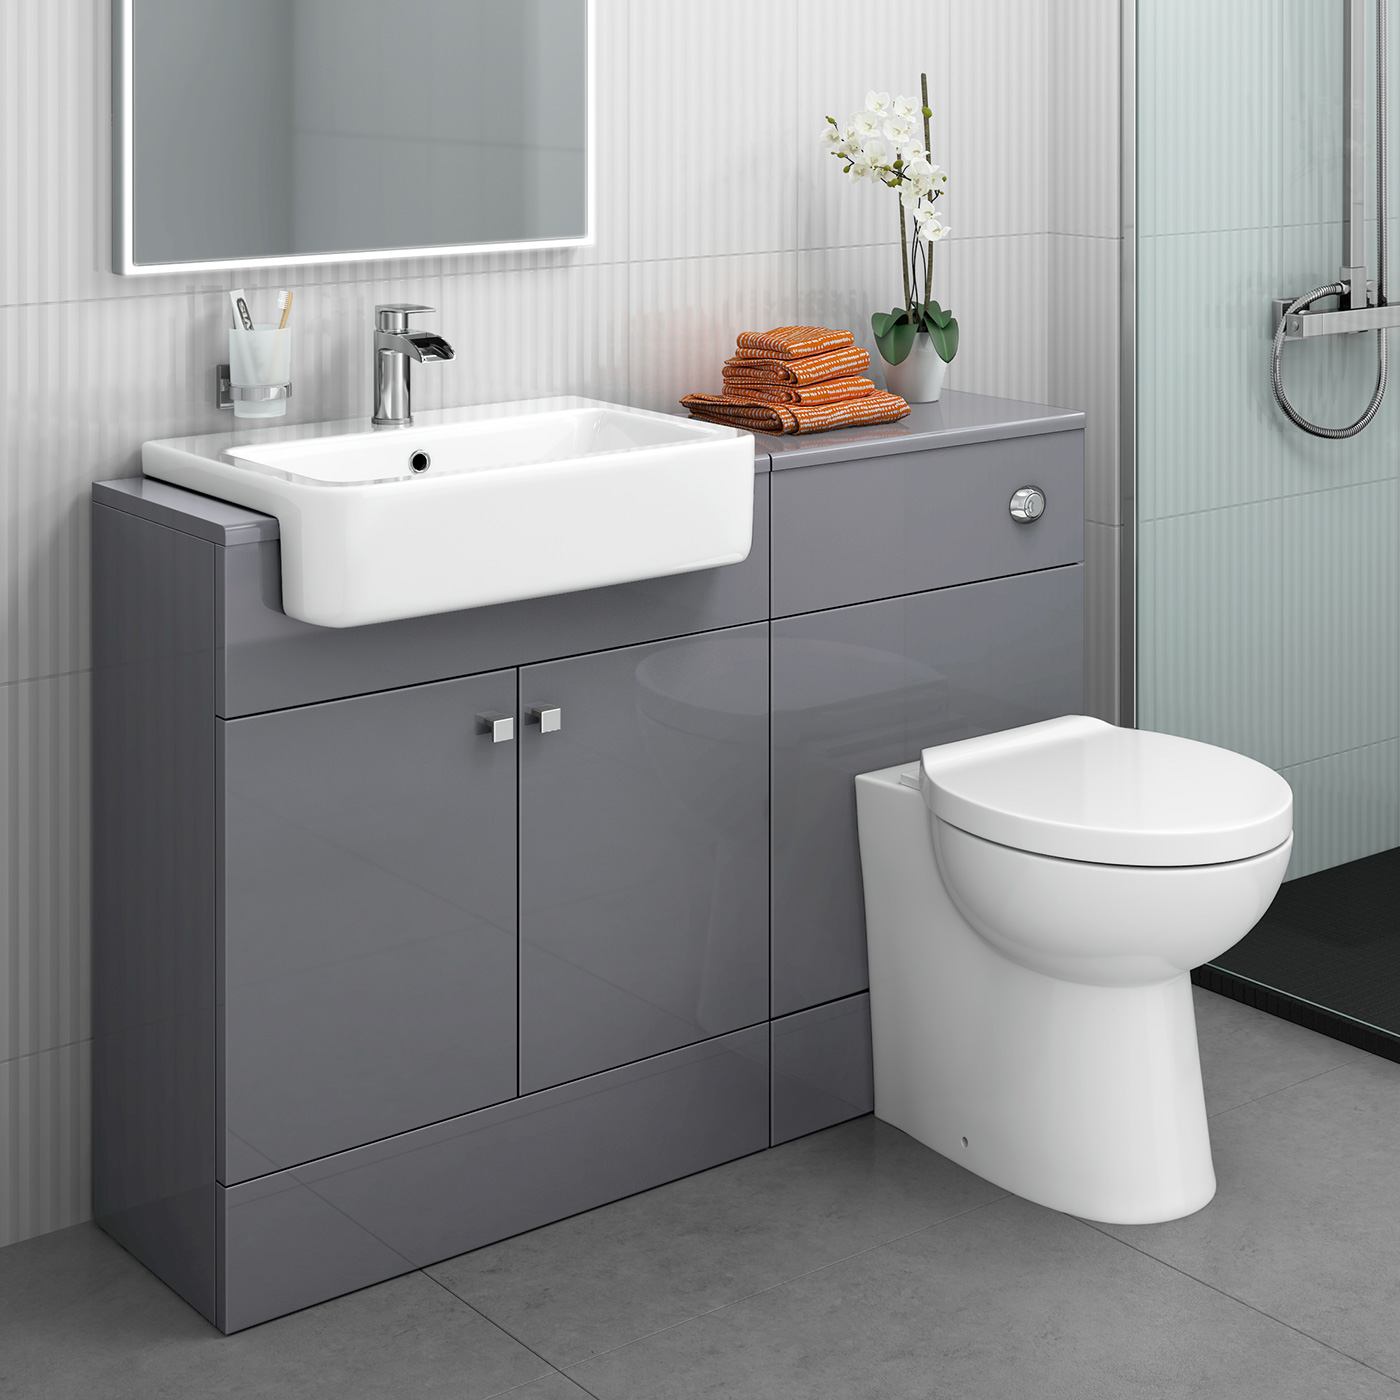 Minimalist Likeable sink vanity units for bathrooms Wondeful Primary